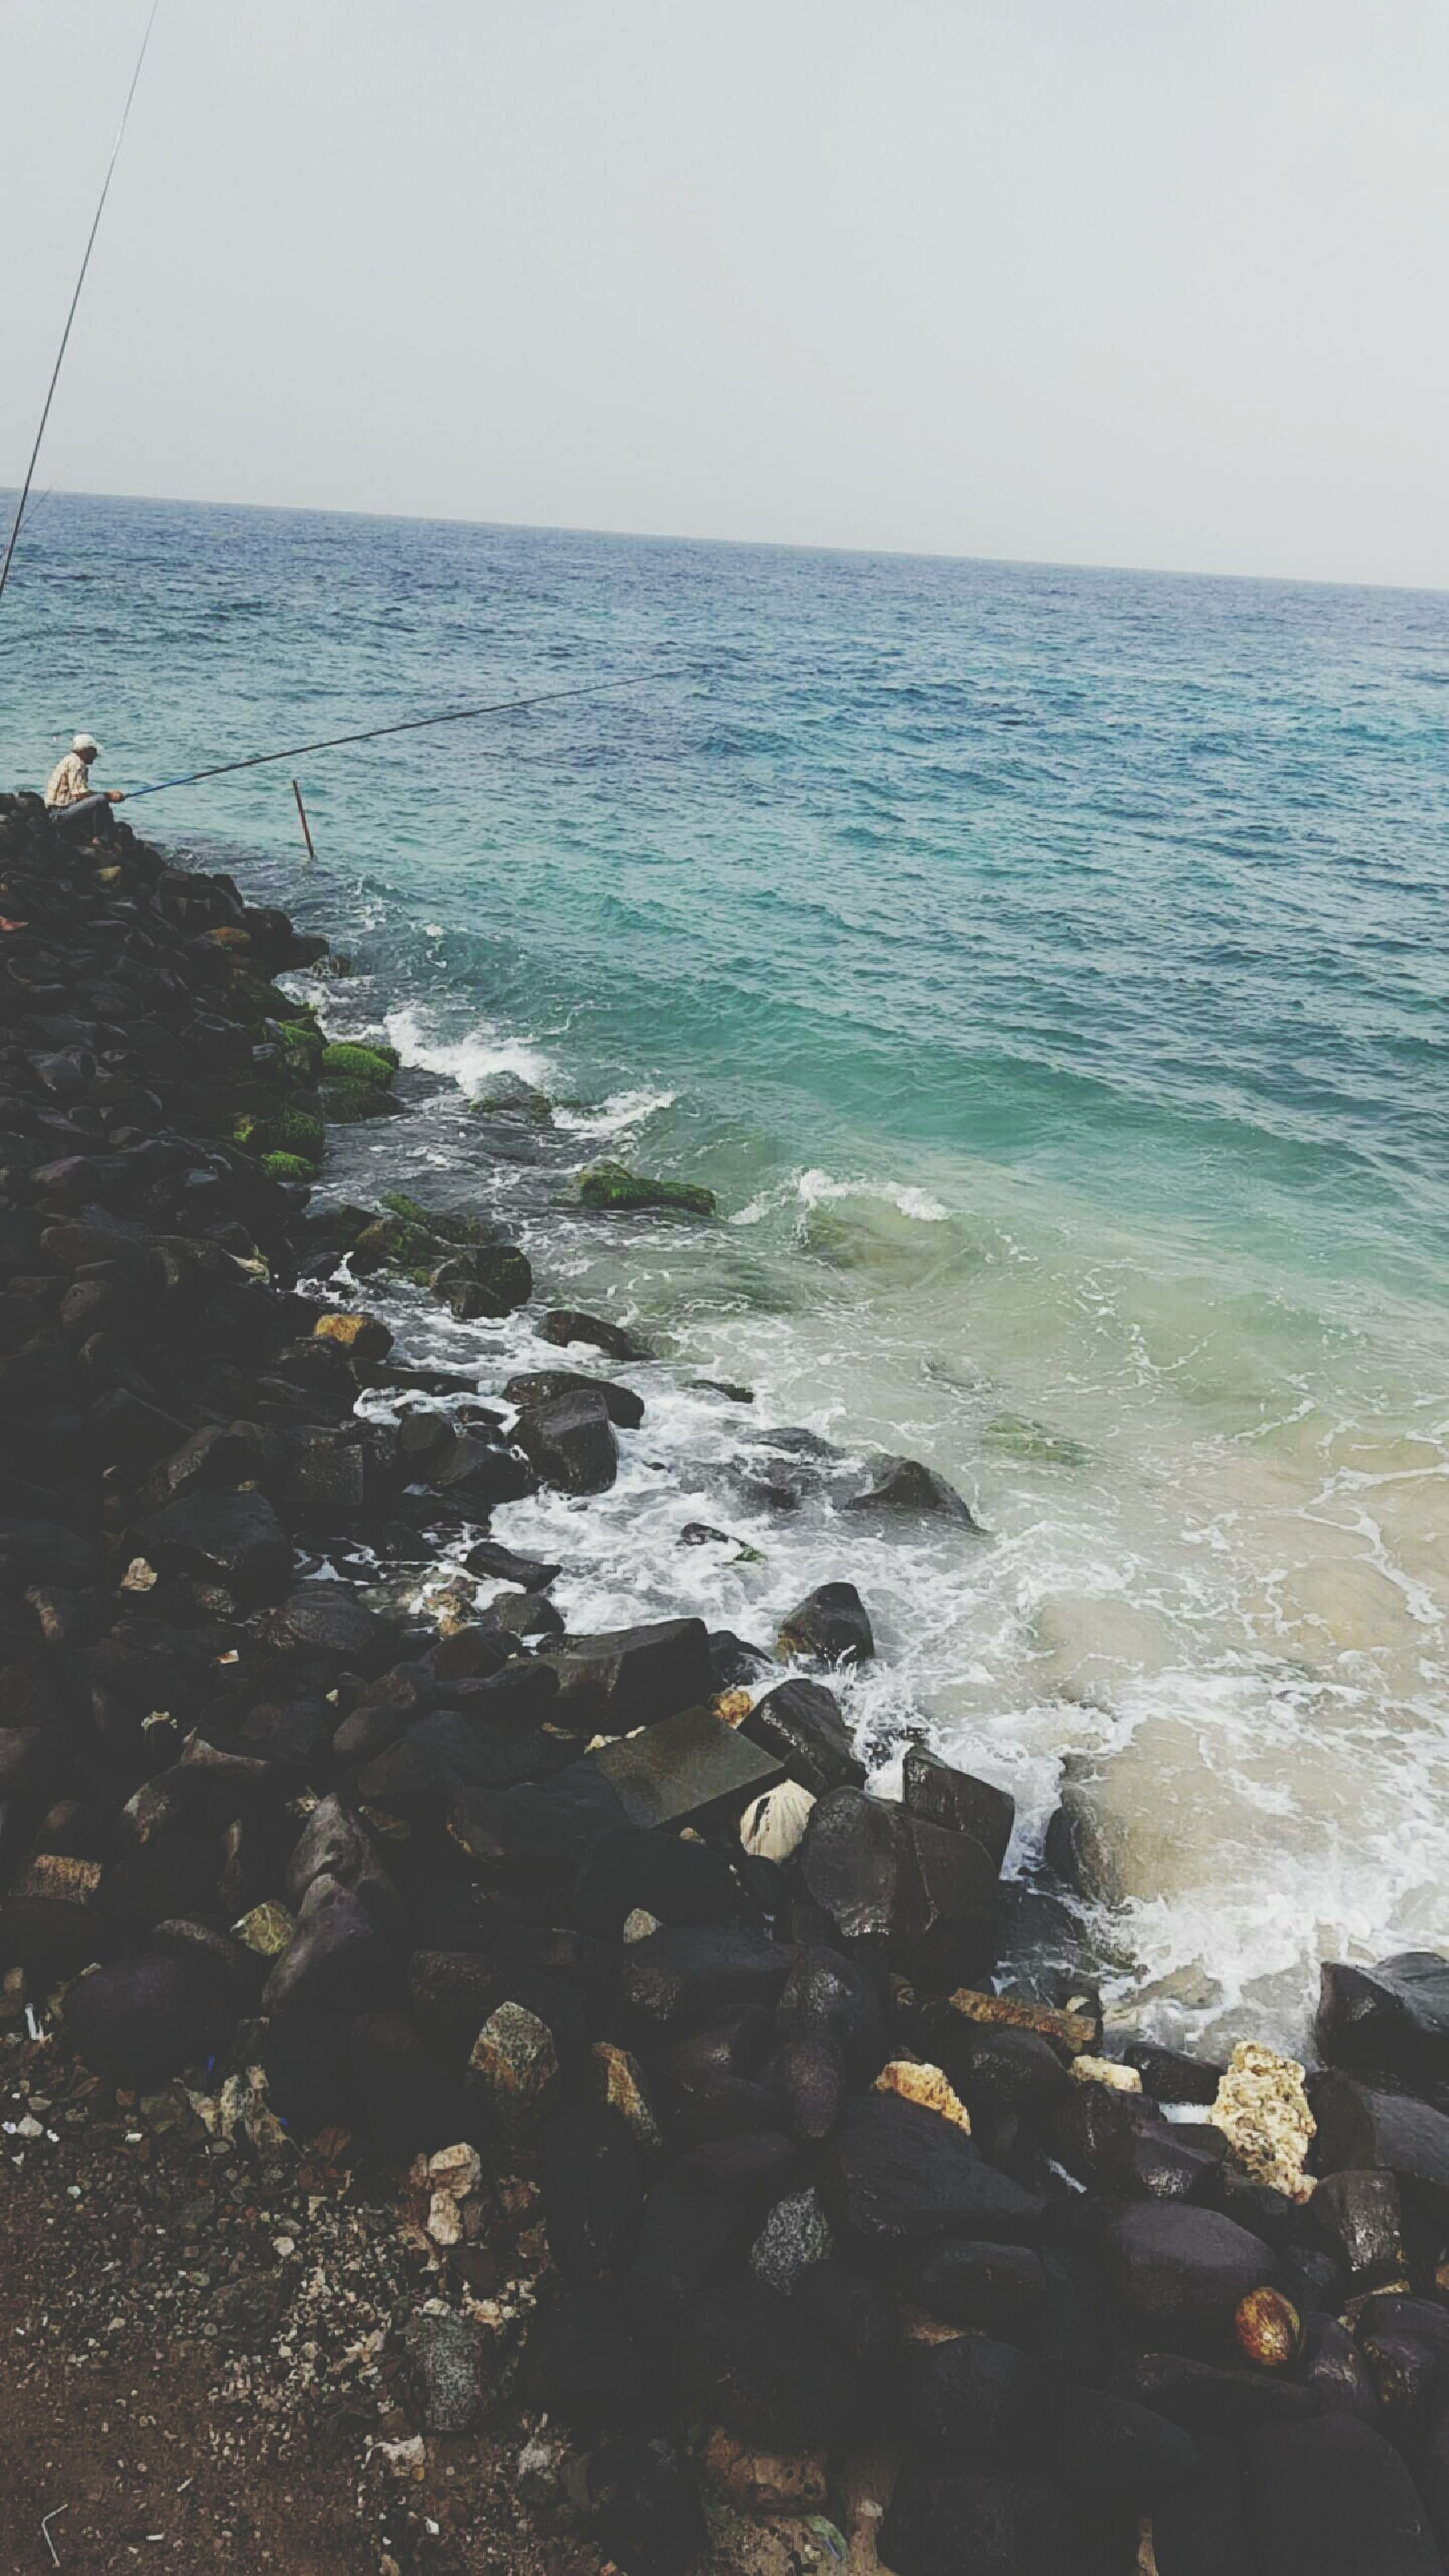 water, sea, horizon over water, scenics, beach, tranquil scene, tranquility, beauty in nature, sky, shore, nature, clear sky, idyllic, wave, rock - object, day, seascape, remote, outdoors, copy space